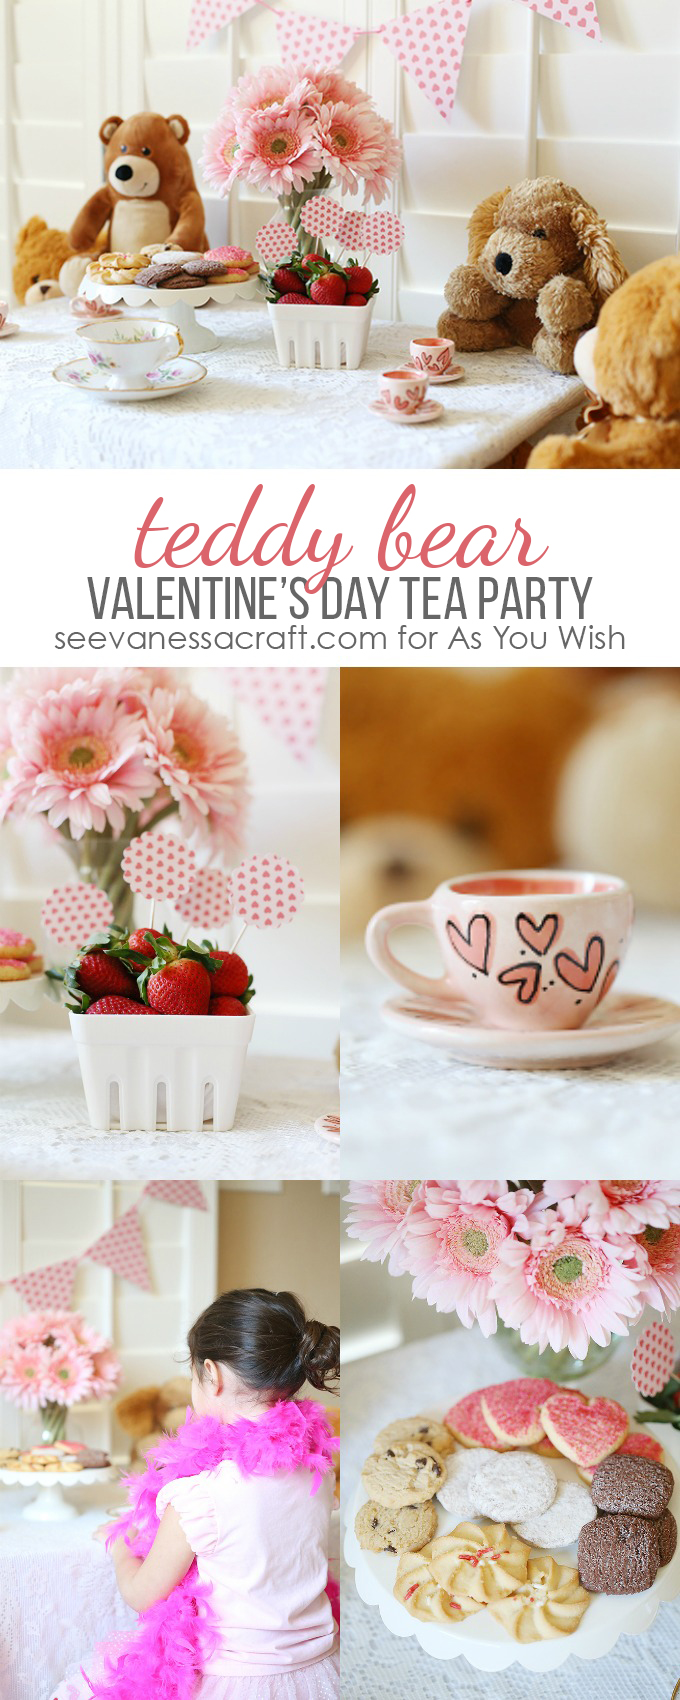 Valentines Day Teddy Bear Tea Party for As You Wish